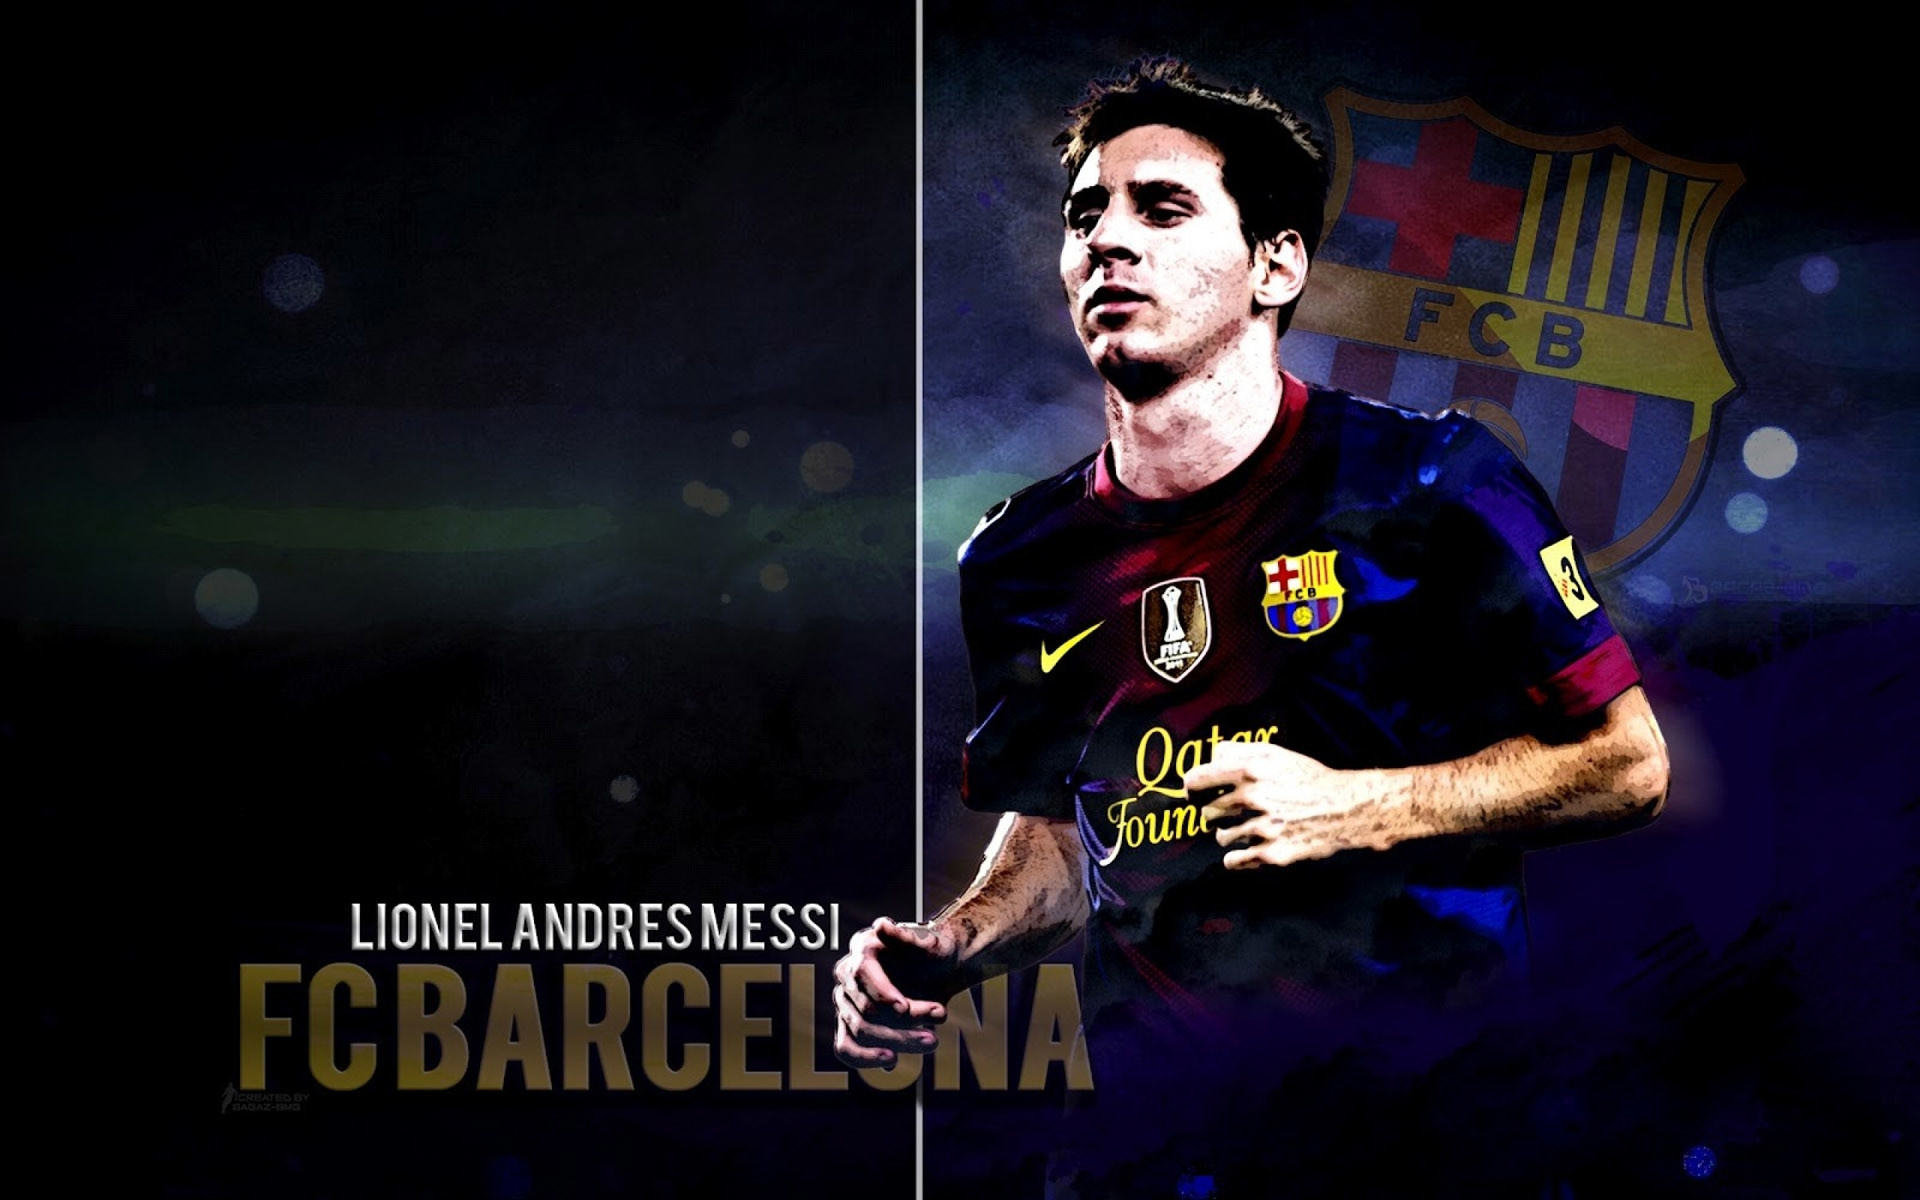 Messi logo wallpapers 75 images leo messi hd pics samsung 7 download wallpaper 1080x1920 lionel messi player back shirt sony xperia voltagebd Gallery